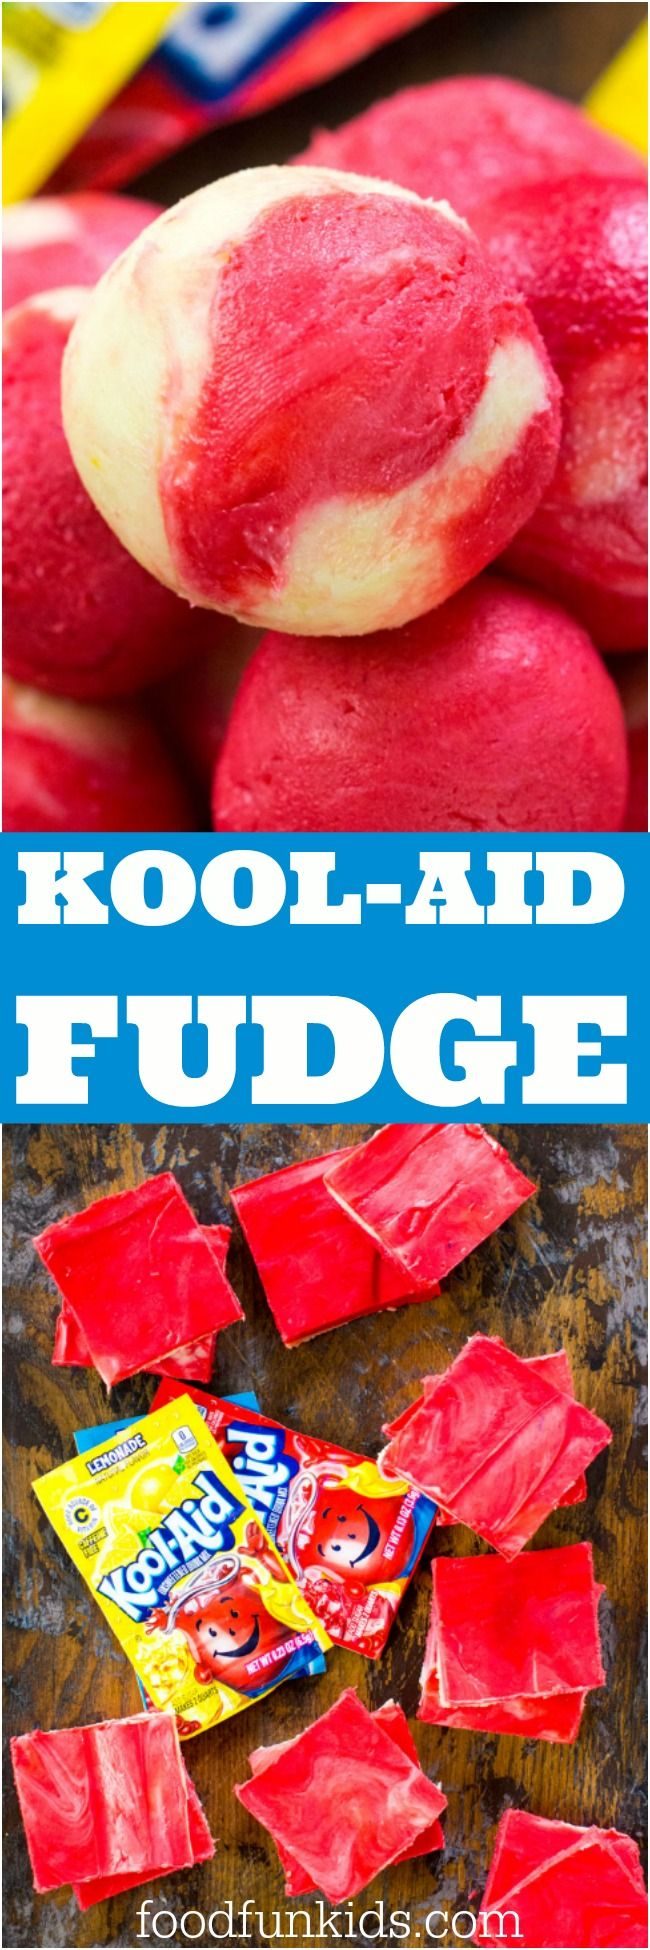 Kool Aid Fudge is one of the easiest and fun projects you can make with kids. All it takes is 3 ingredients and some refrigeration time. #fudge #koolaid